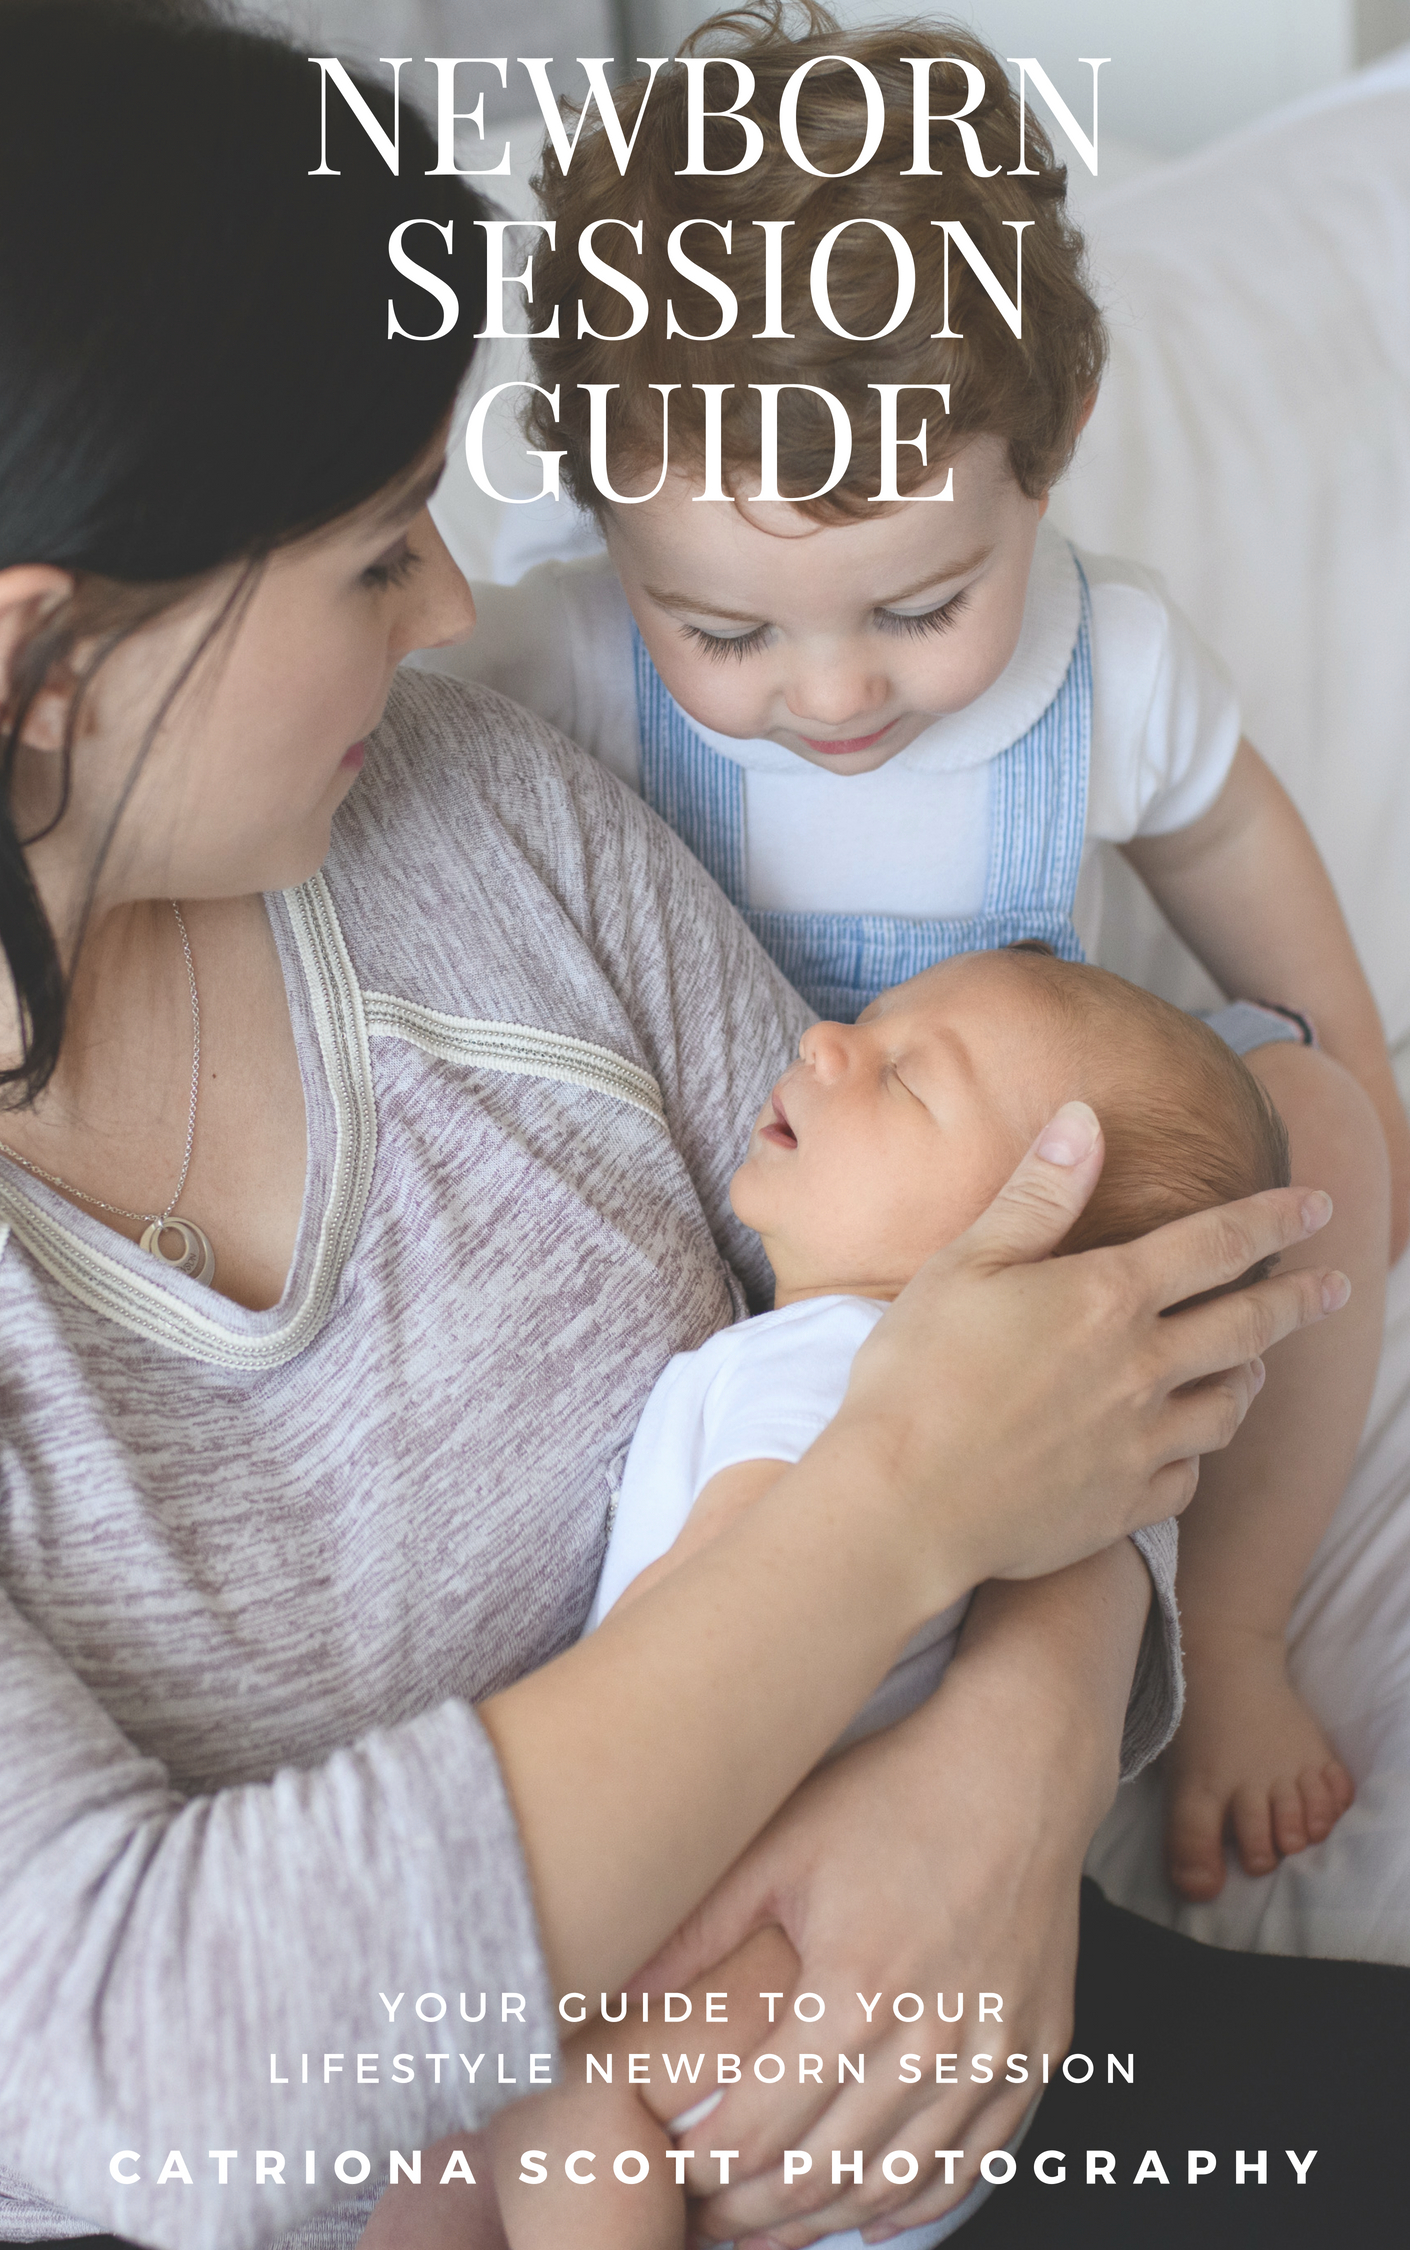 Download your newborn session guide